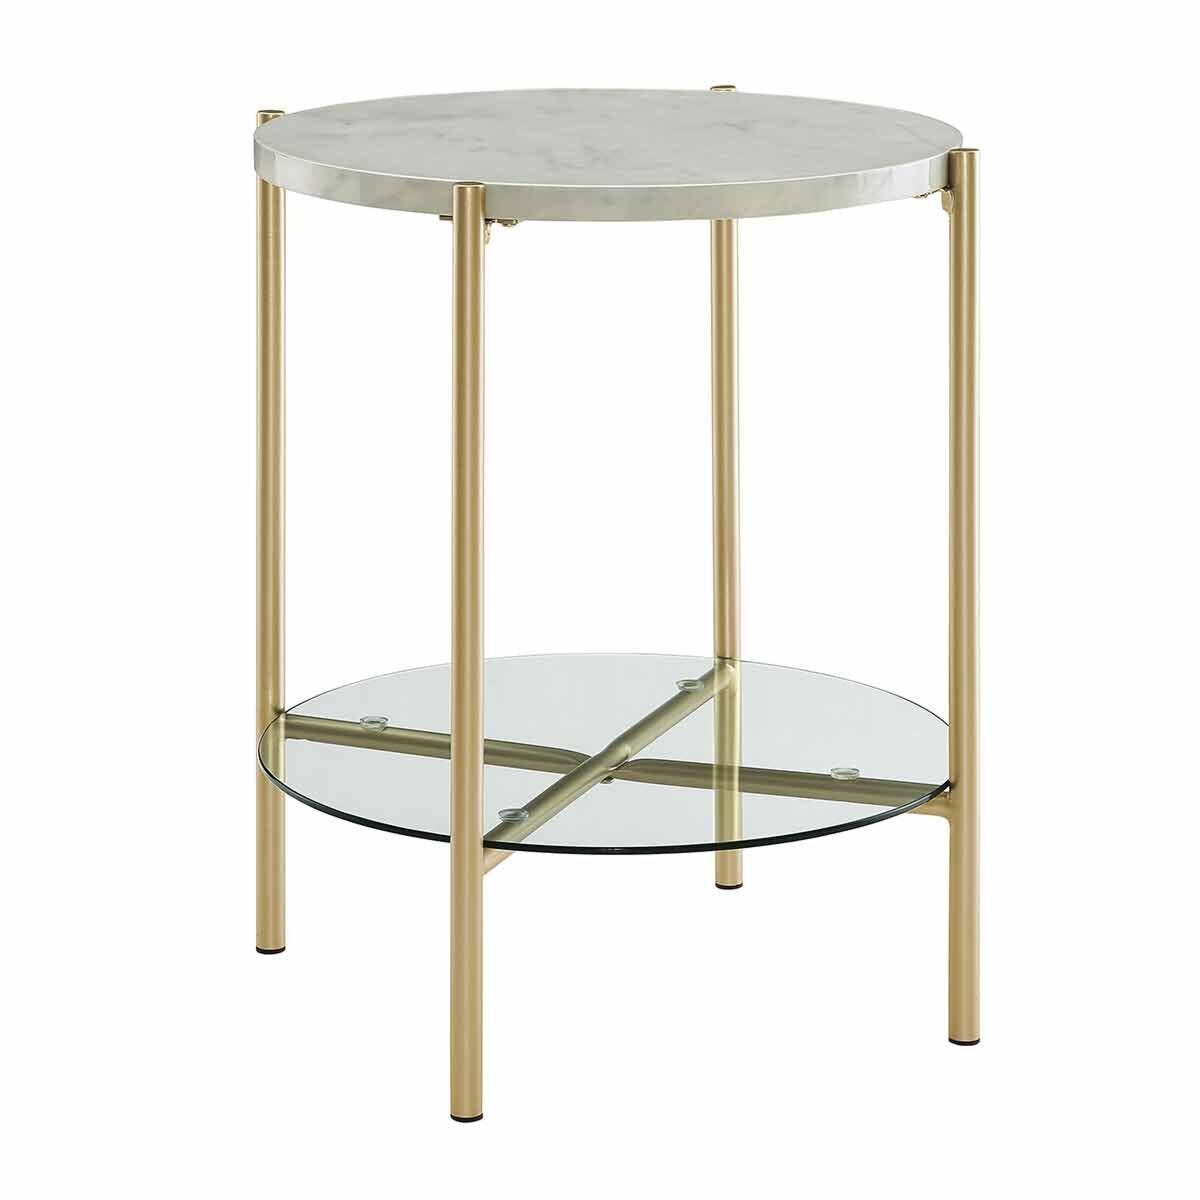 Lexington Mixed Material Round Side Table White Marble